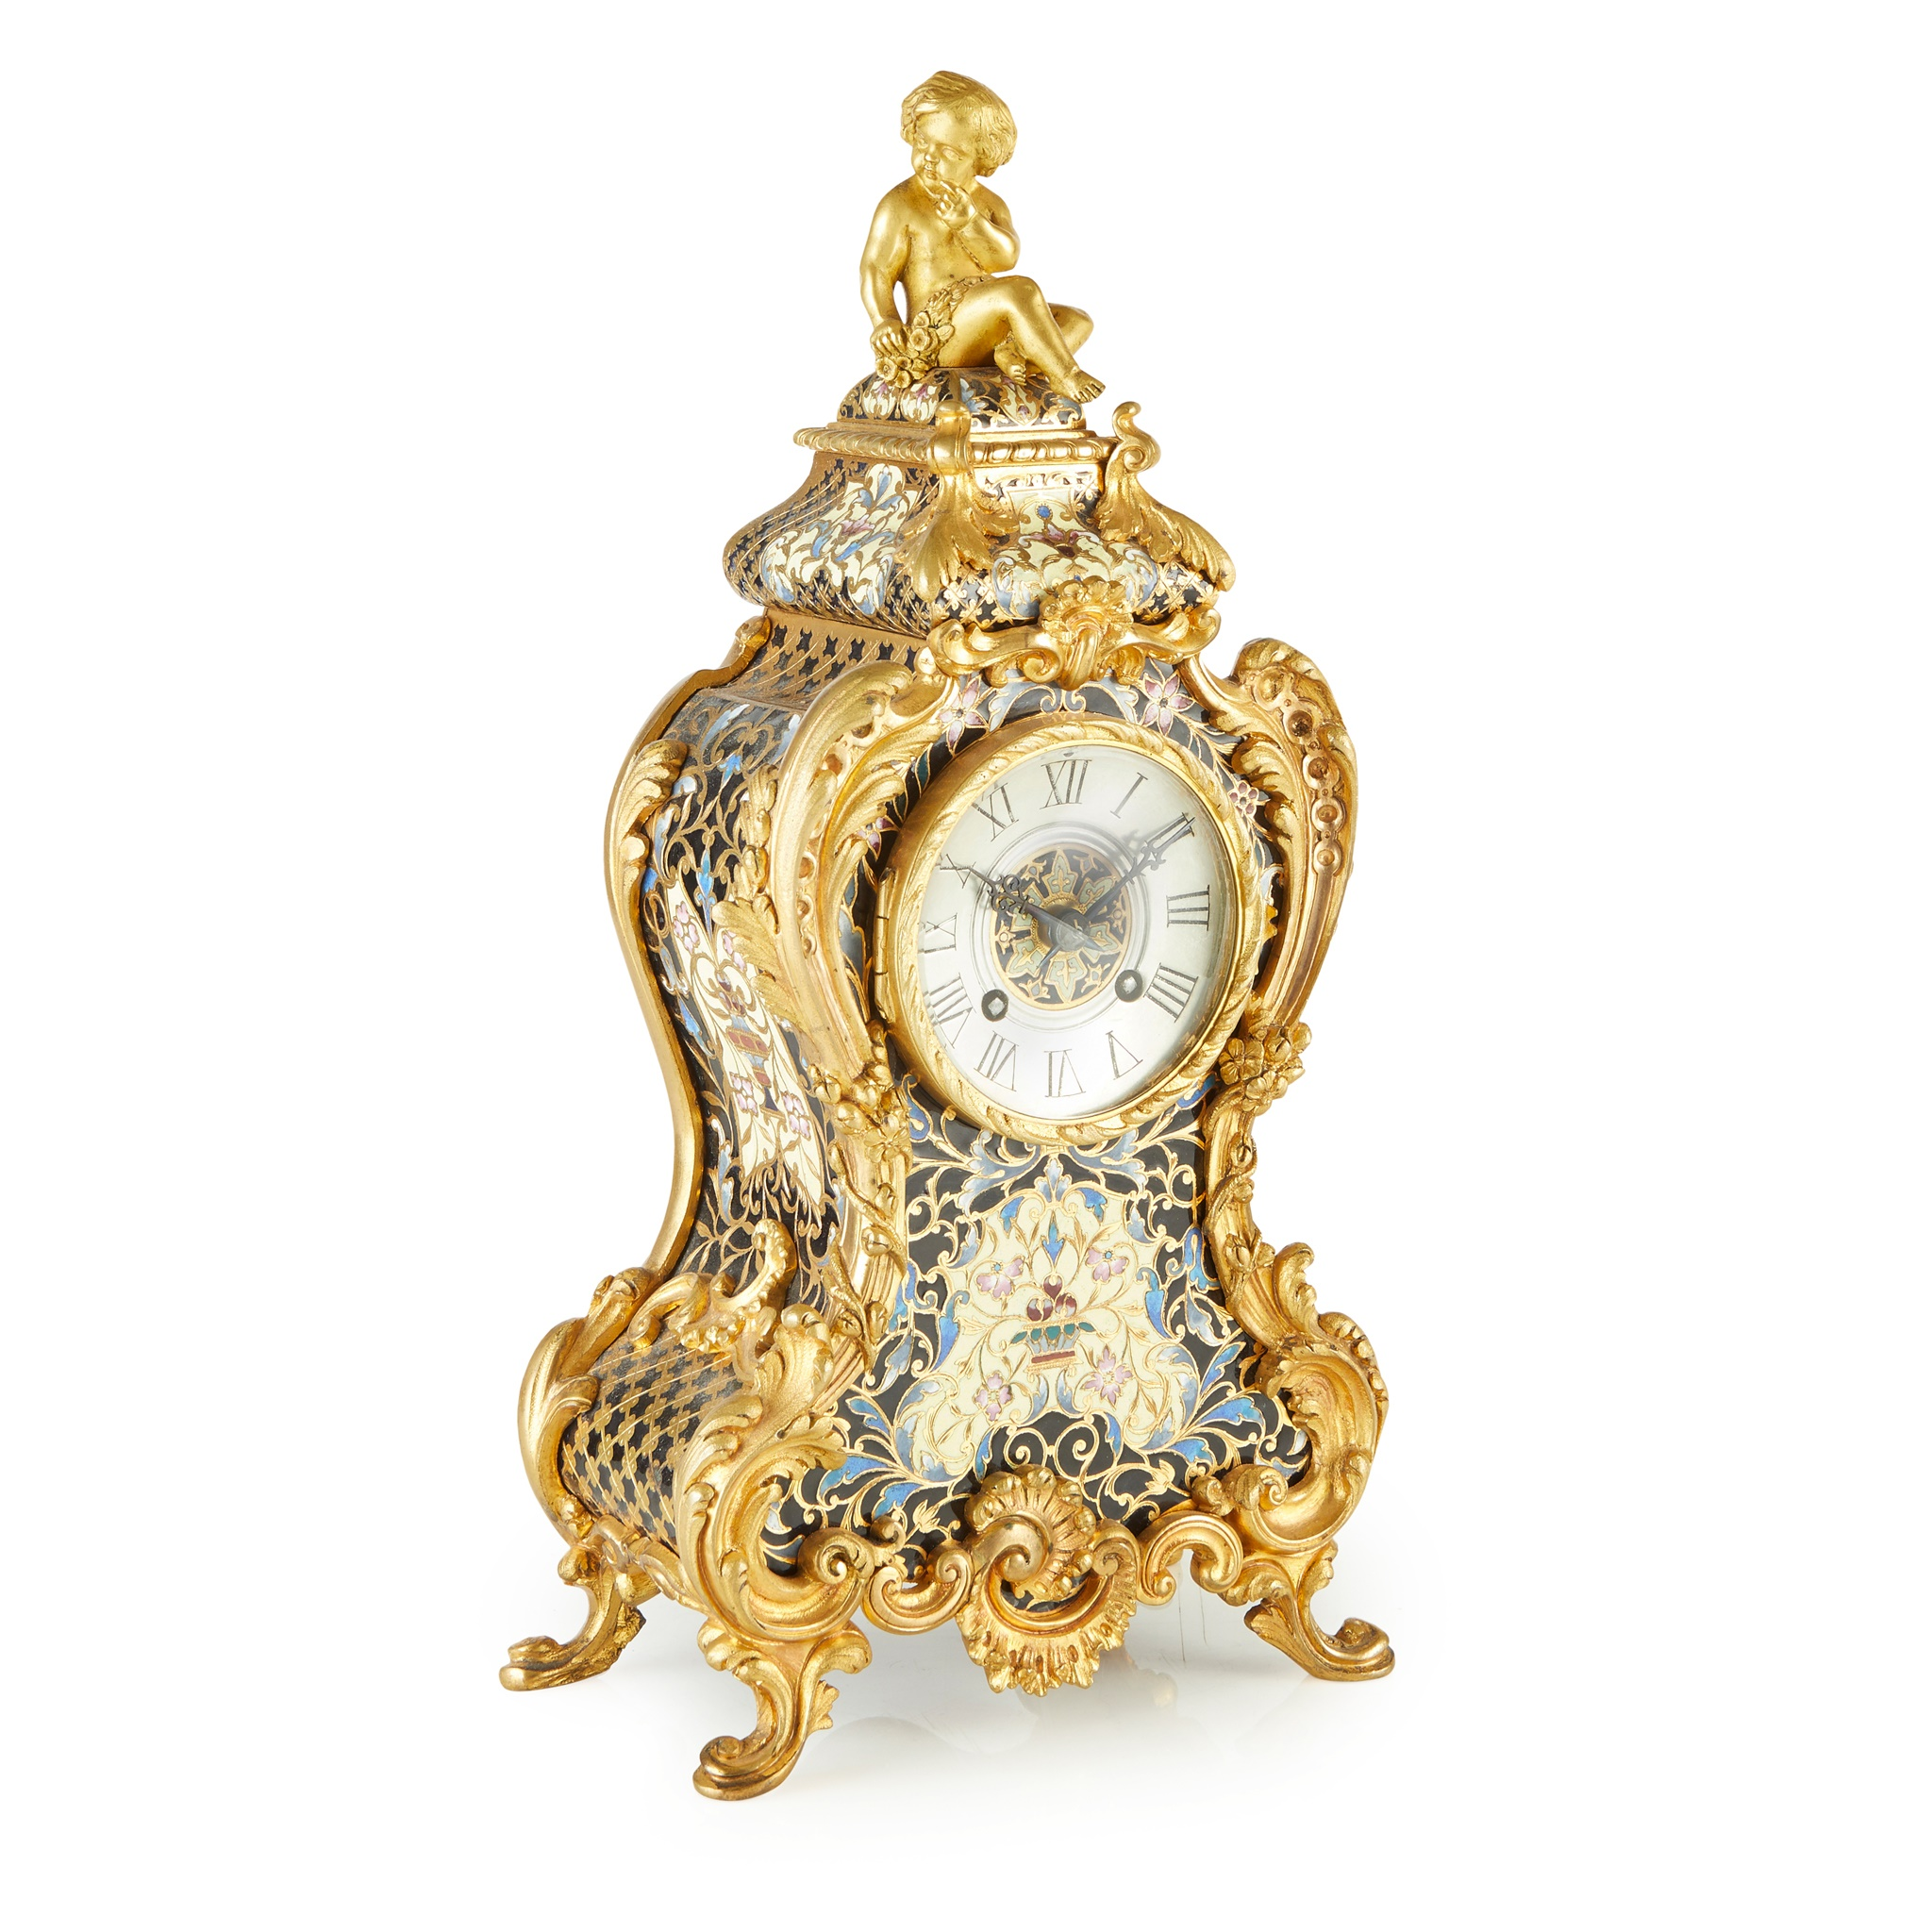 FRENCH GILT BRONZE AND CHAMPLEVÉ ENAMEL MANTLE CLOCK 19TH CENTURY - Image 2 of 2